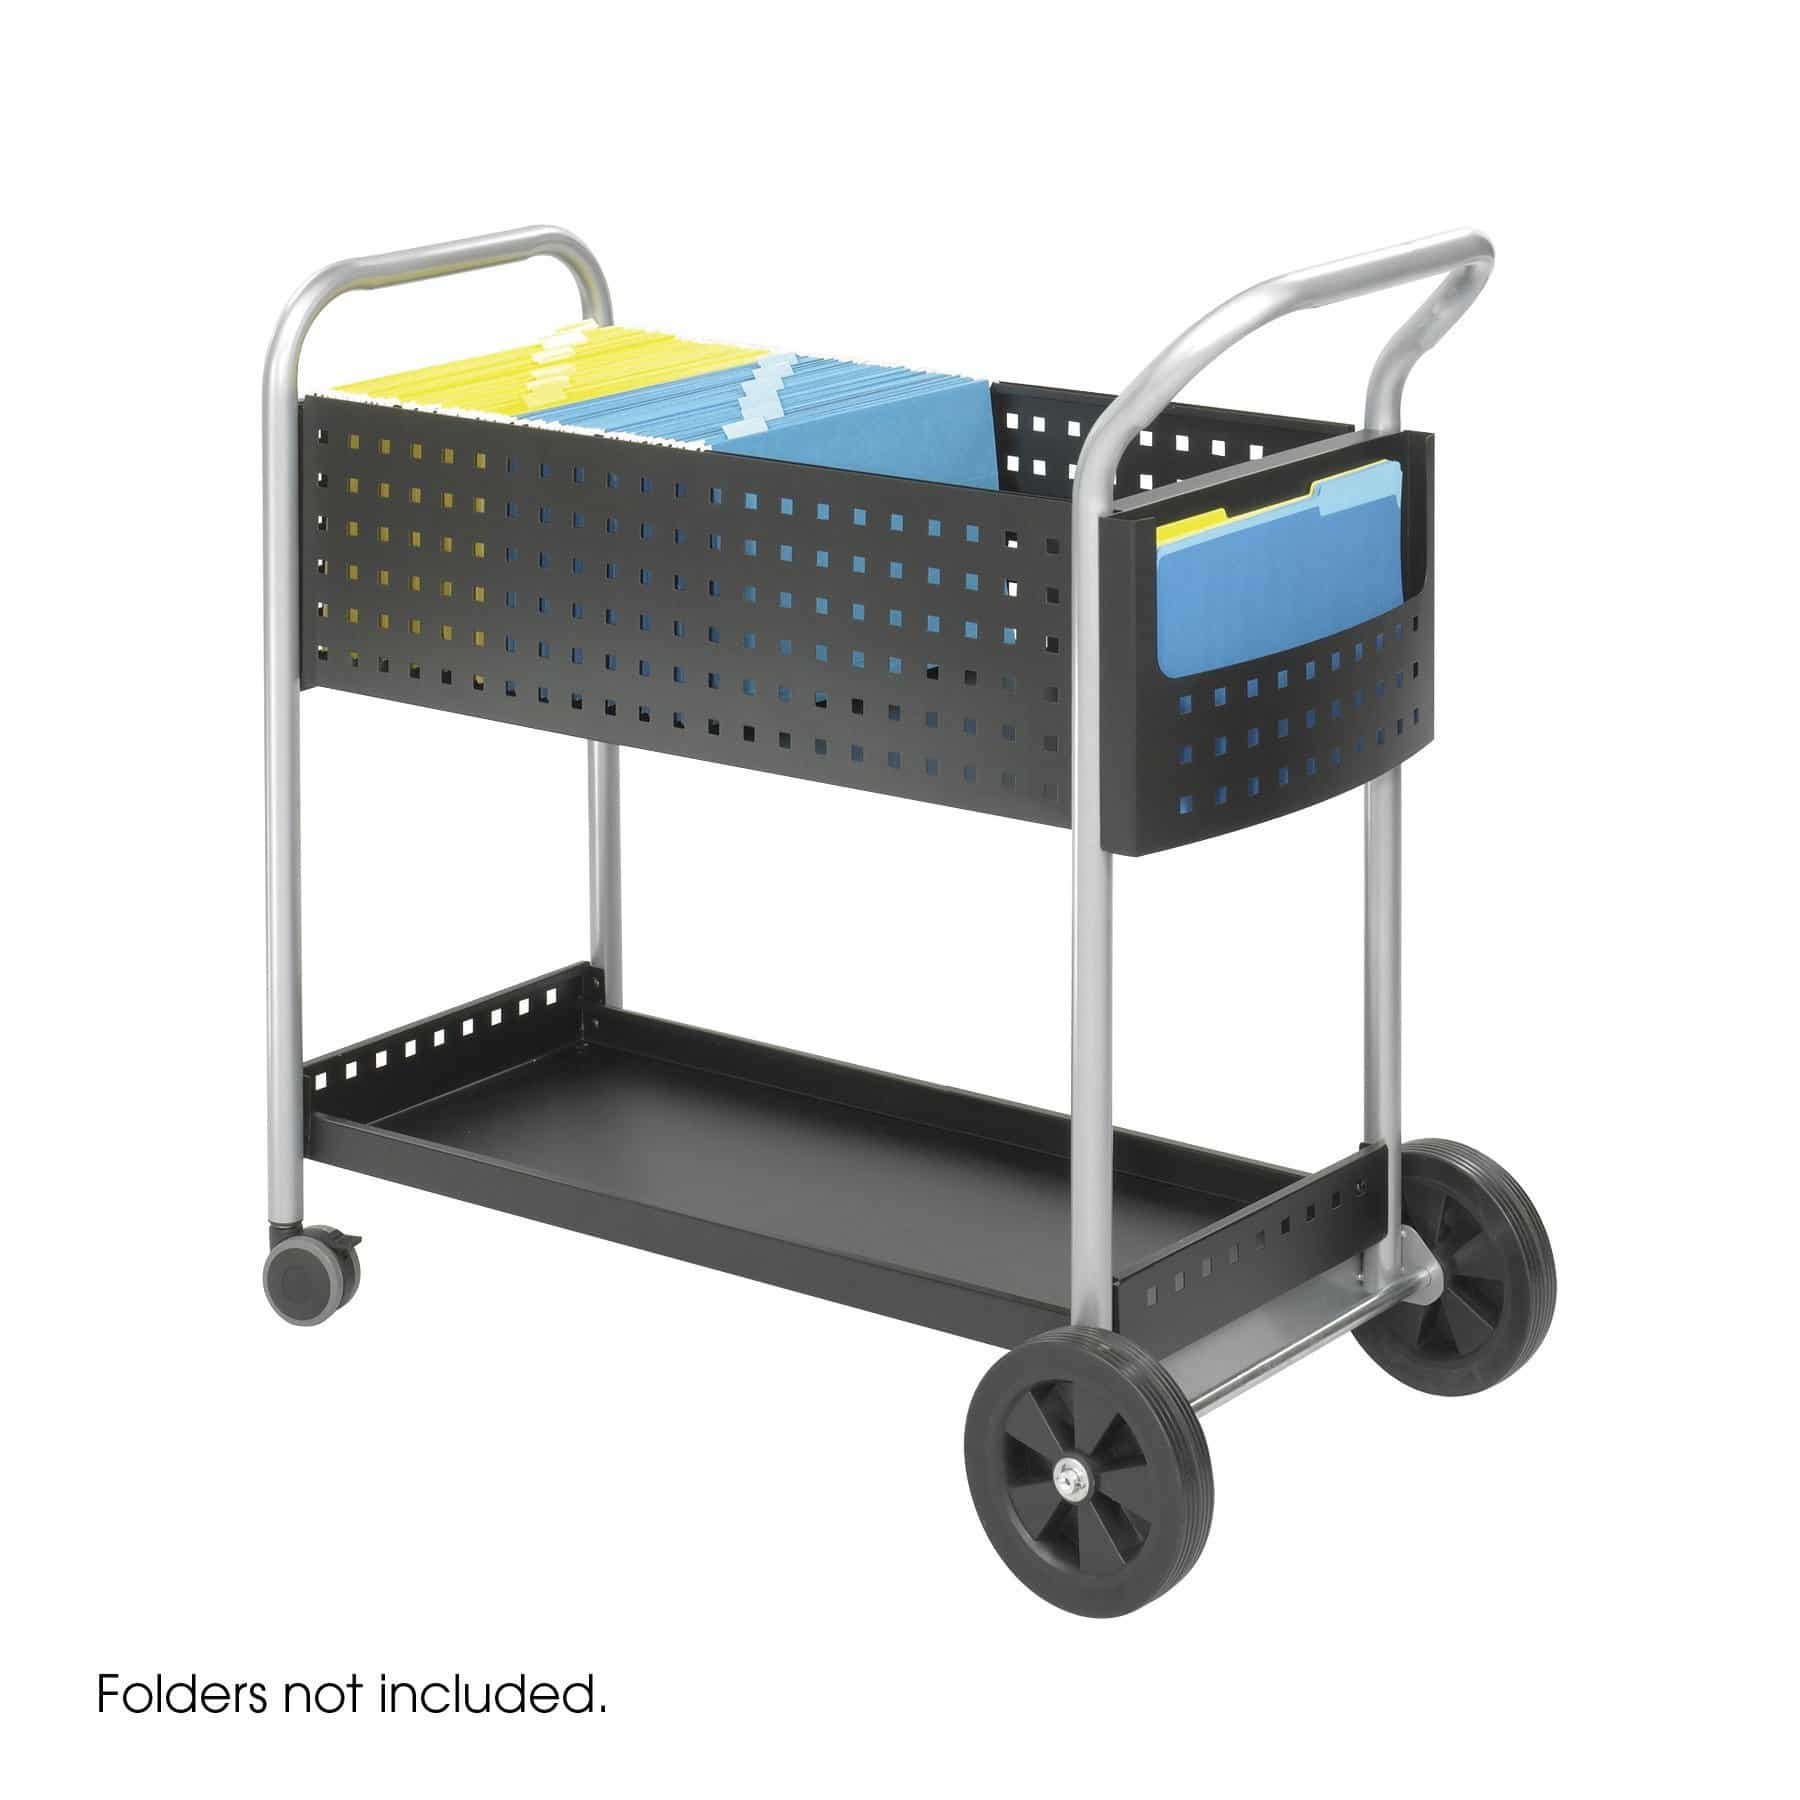 bedinhome - 5239BL Mobile steel handle & side pocket storage 20 Inch D Scoot Mail basket wheel Cart - Safco - Mail Carts